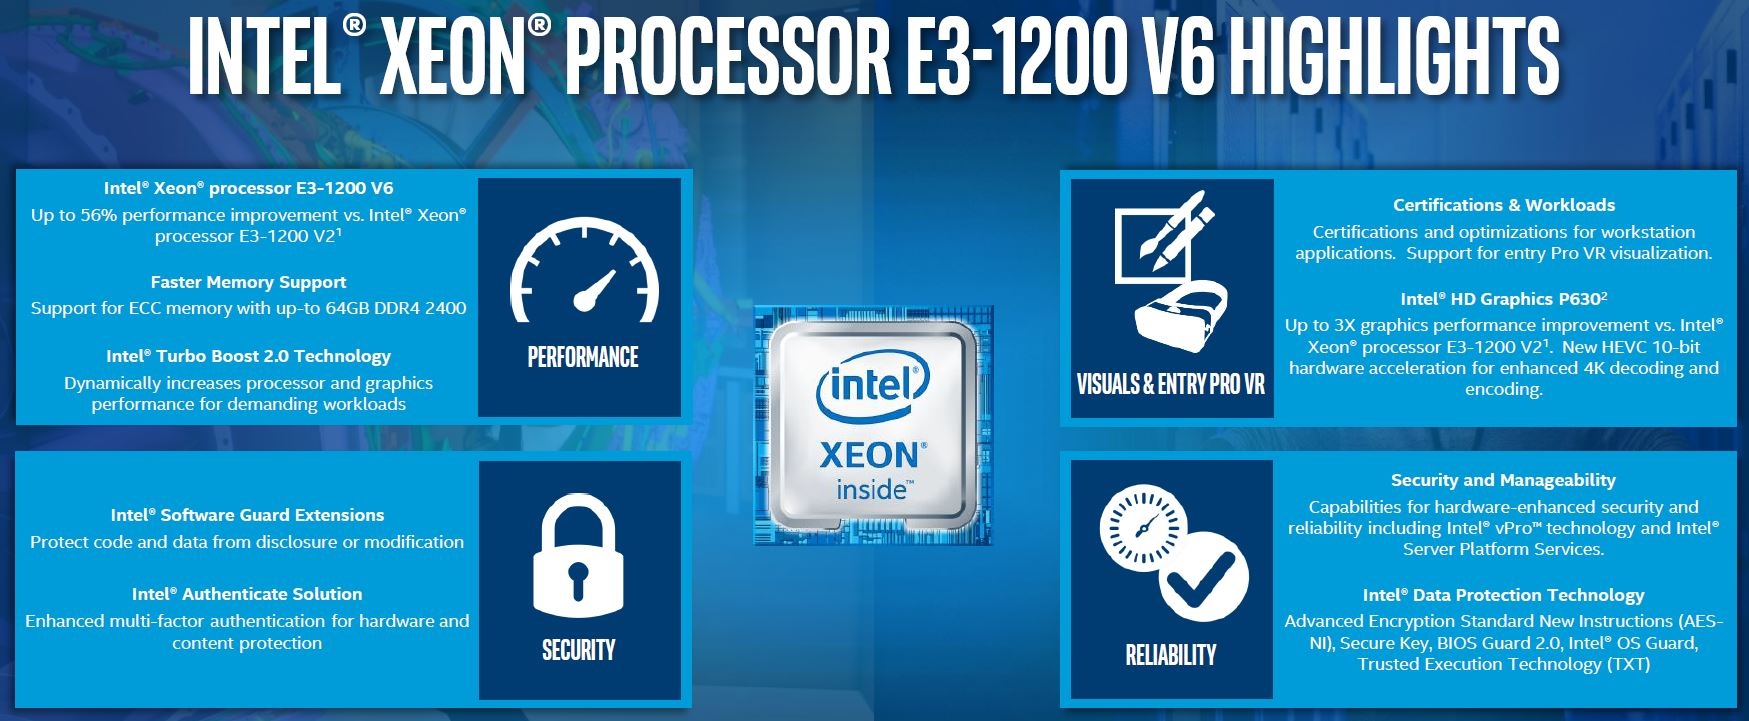 Intel Xeon E3 1200 V6 Series Overview